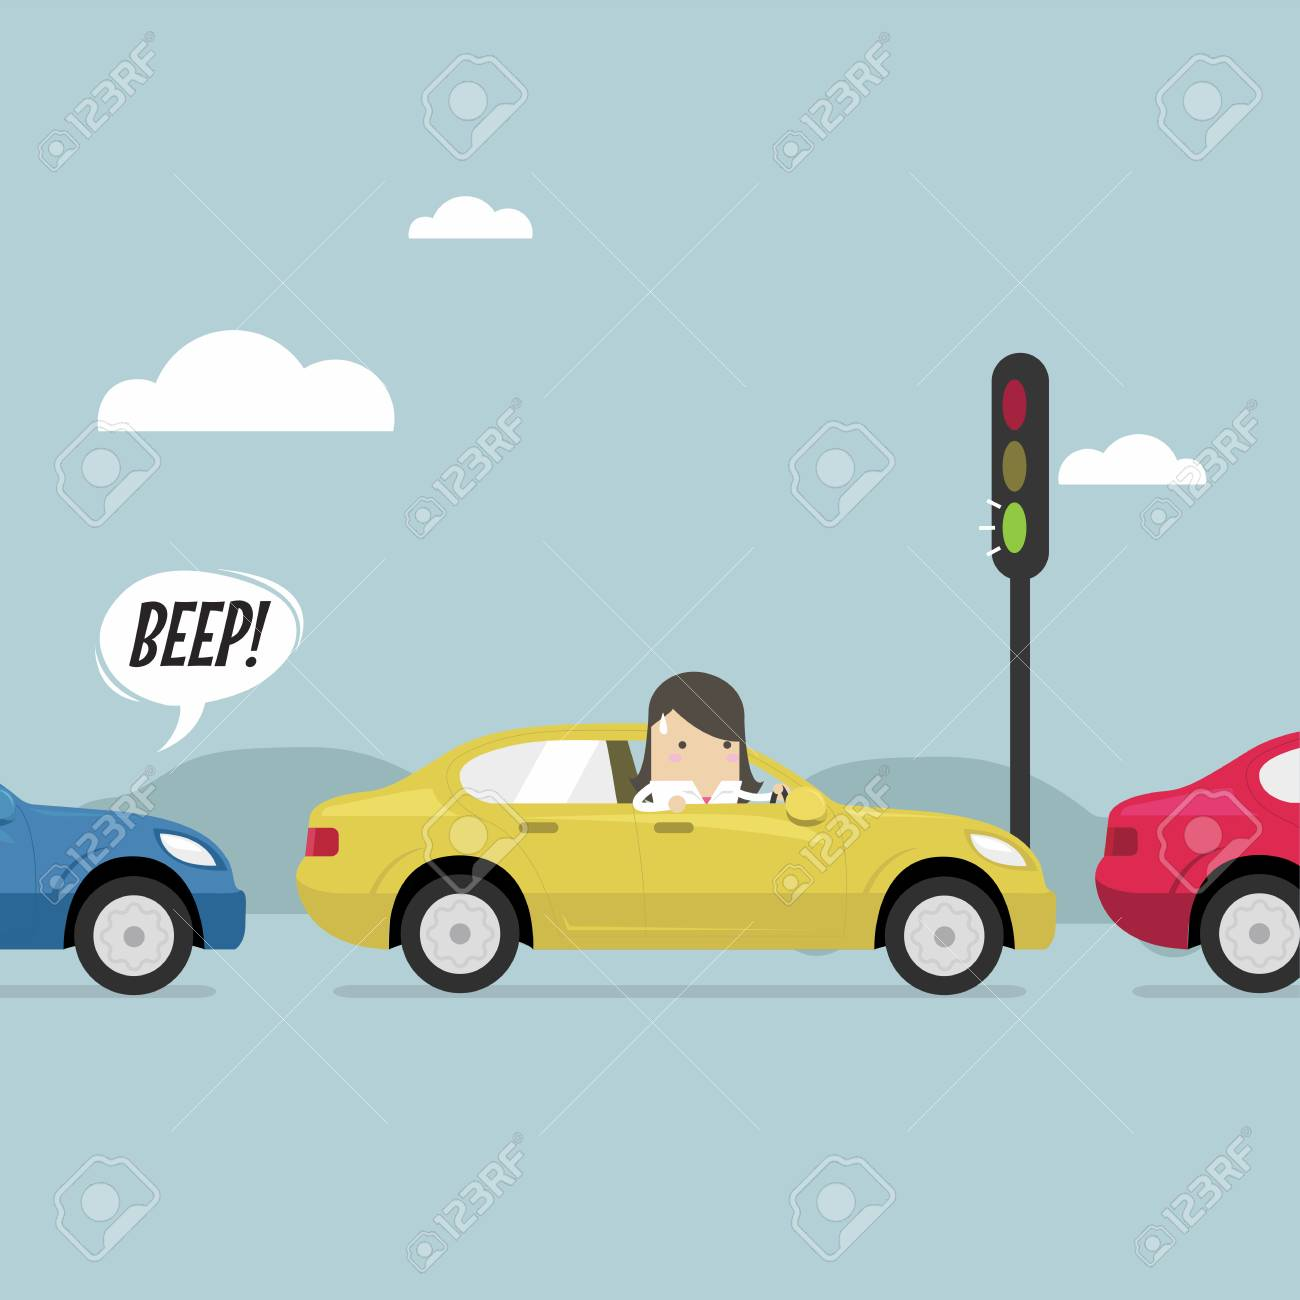 Businesswoman on the road with traffic jam, Green traffic light, honk a horn. - 94370015